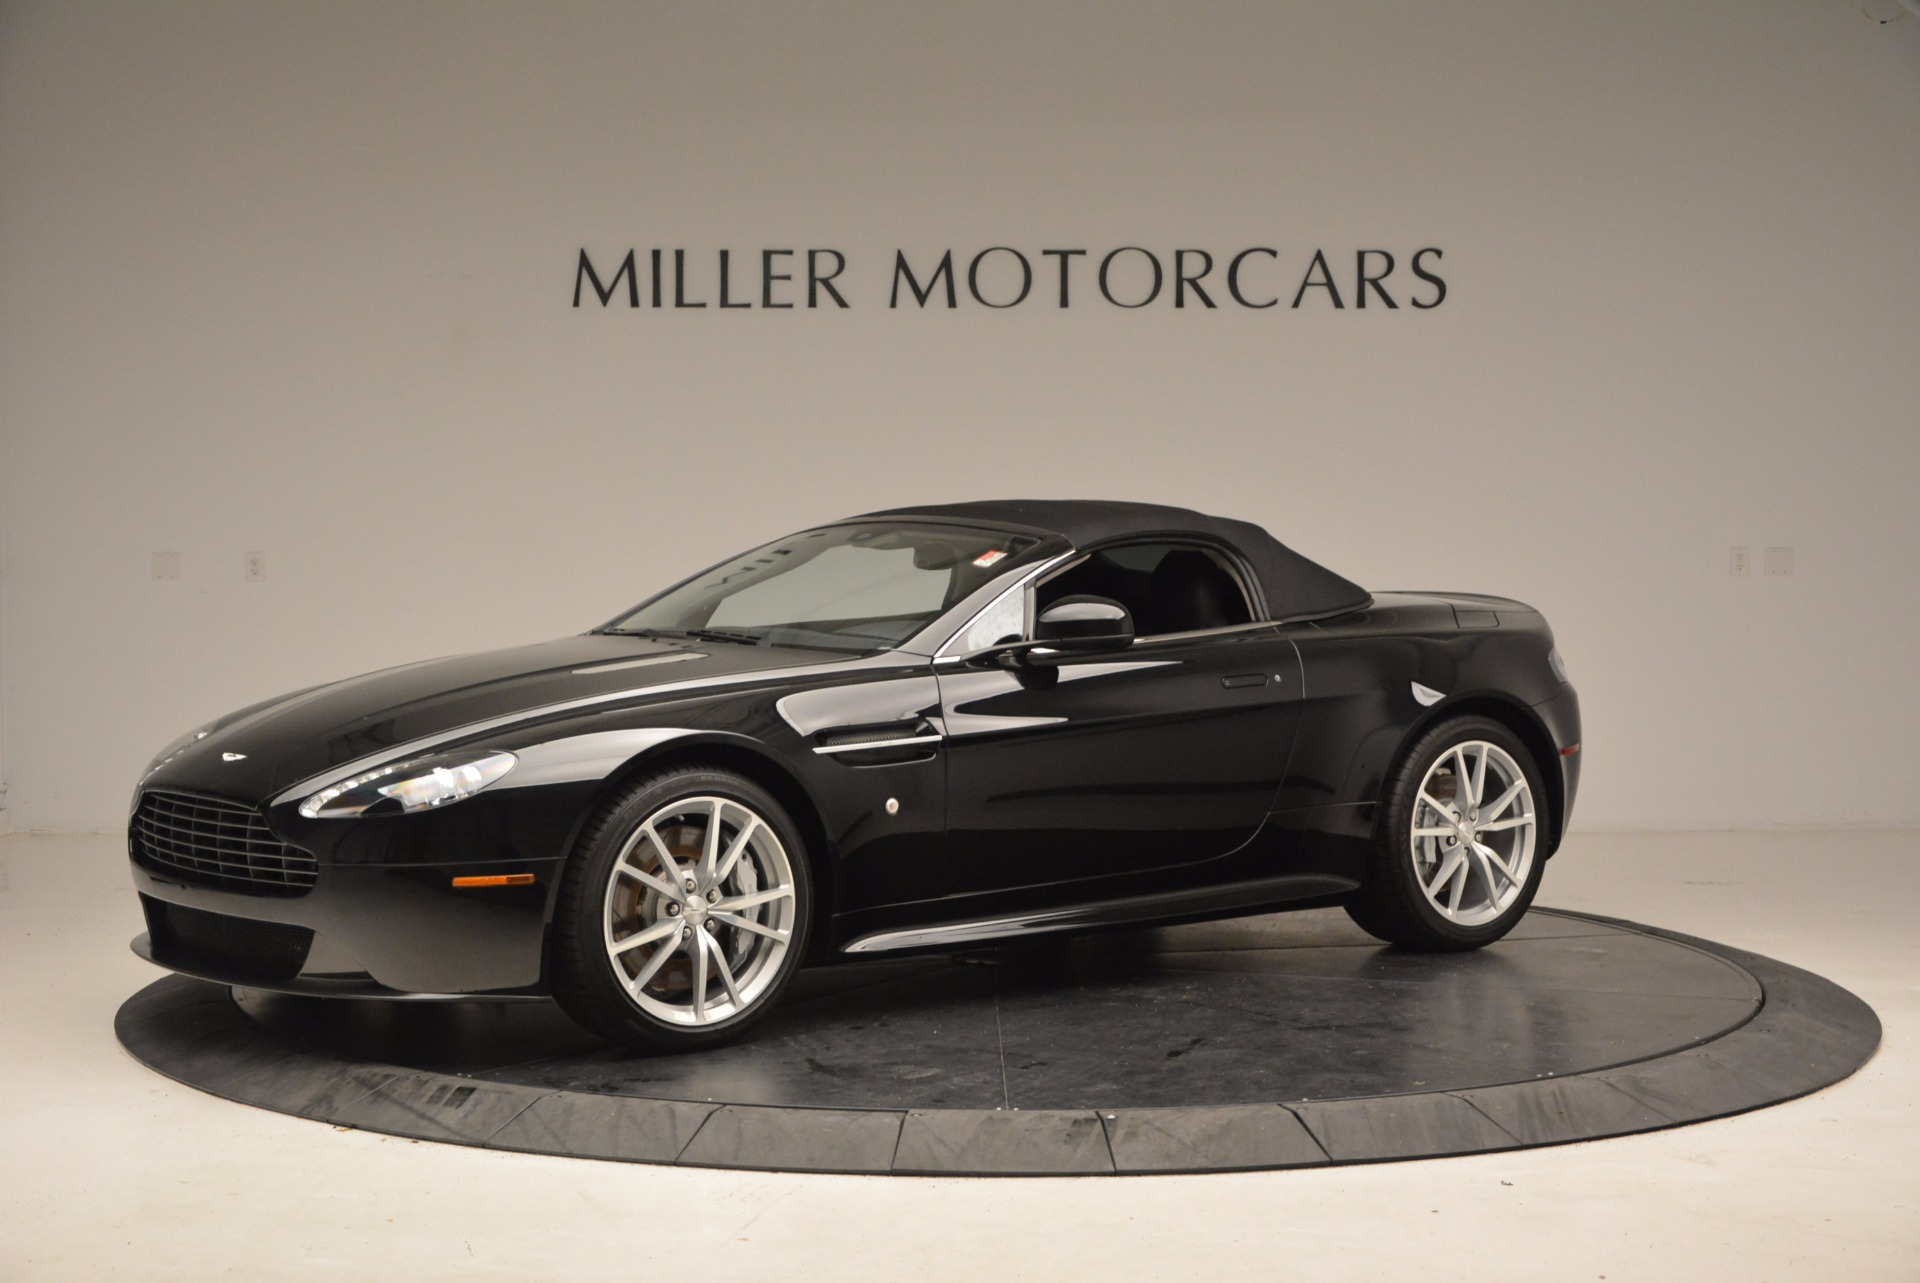 New 2016 Aston Martin V8 Vantage Roadster For Sale In Greenwich, CT 1546_p14